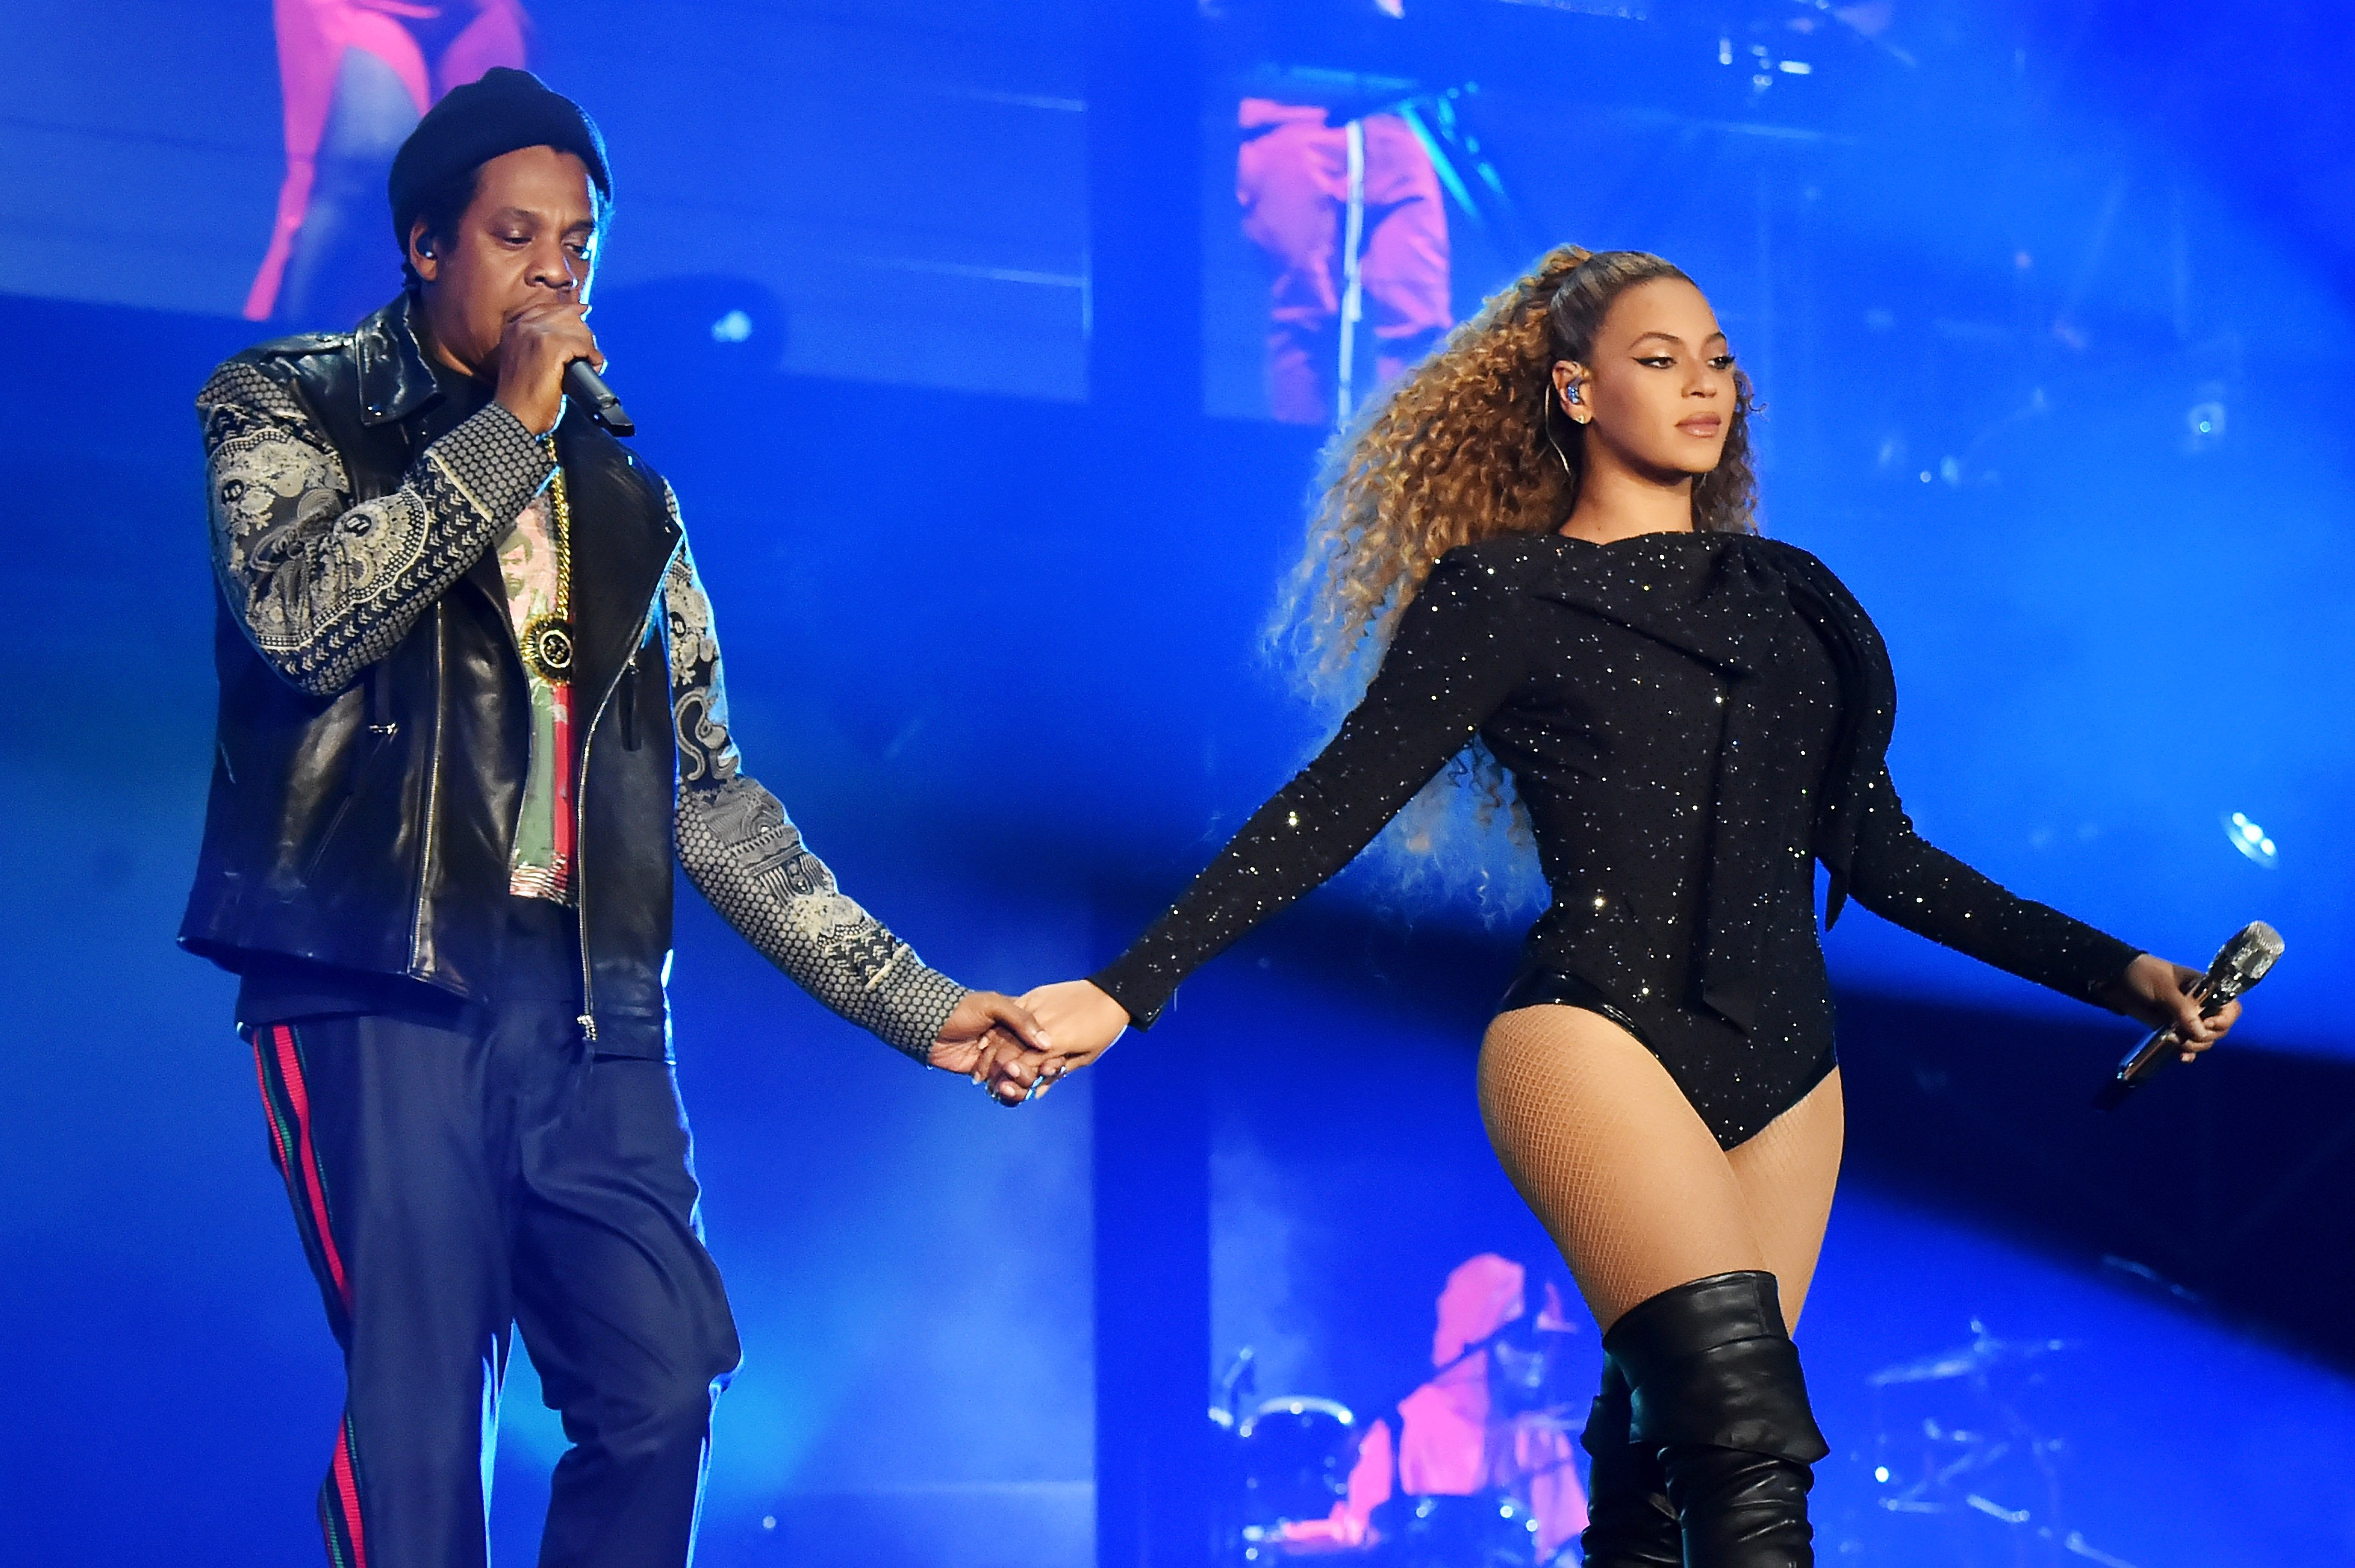 """Jay-Z and Beyoncé pictured performing together during the """"On the Run II"""" tour on June 6, 2018 in Cardiff, Wales. 